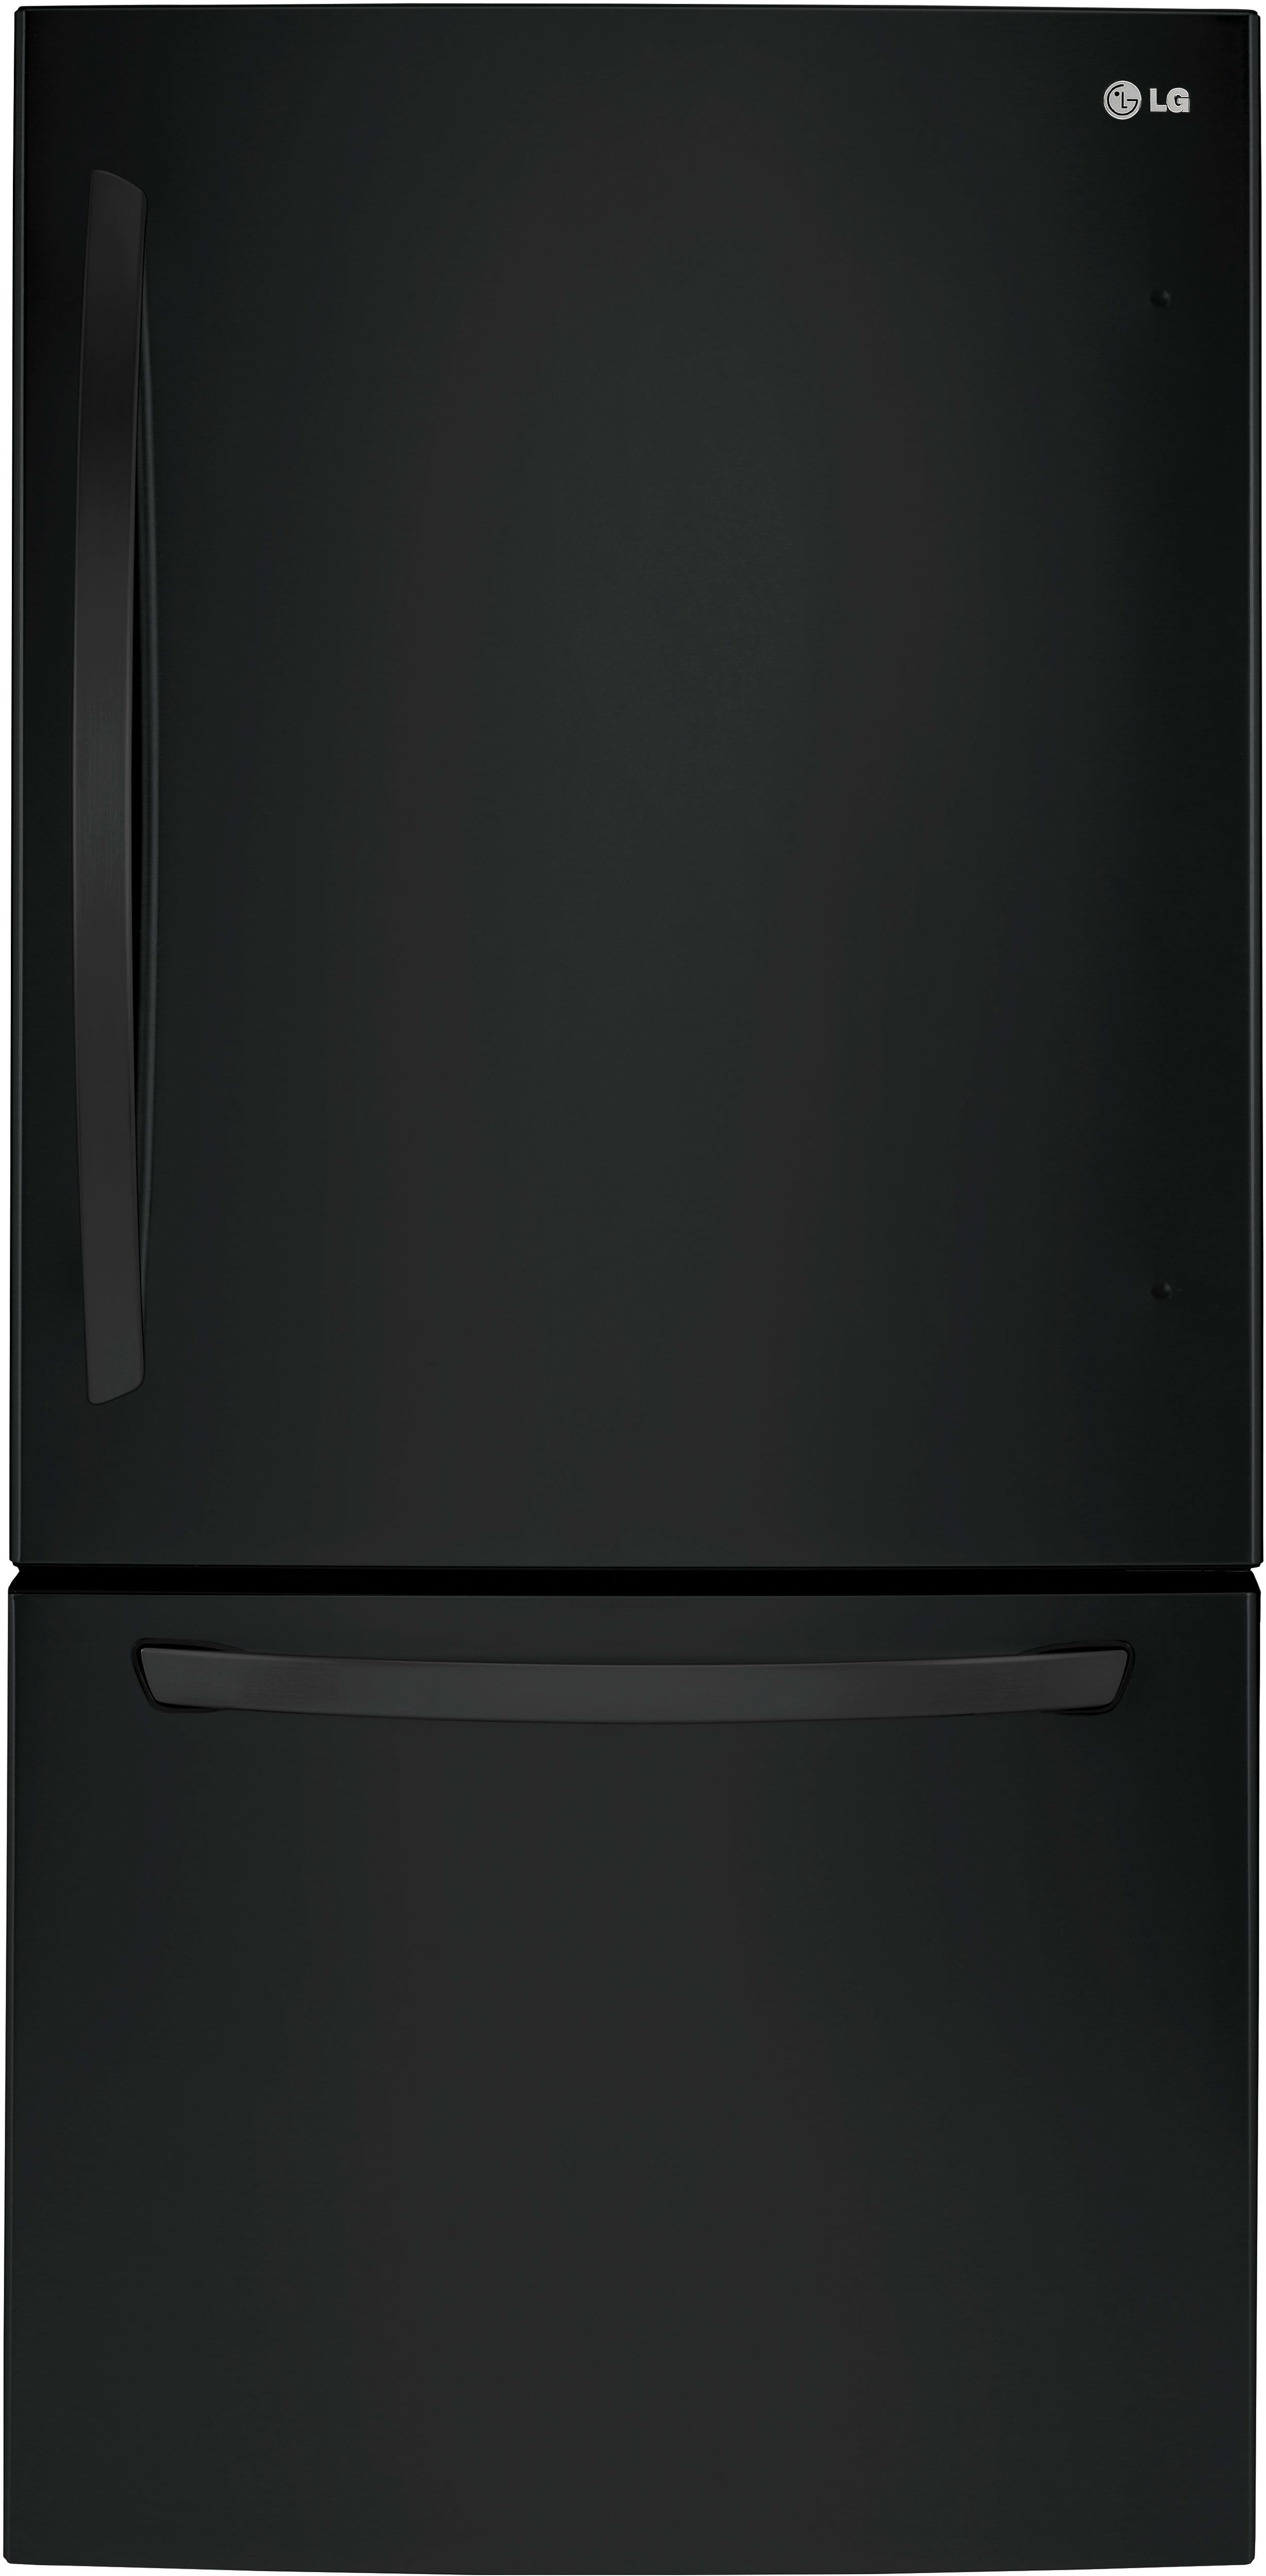 Lg ldcs24223s ldcs24223w ldcs24223b refrigerator review reviewed the lg ldcs24223b comes with a smooth black finish and will likely cost the same rubansaba